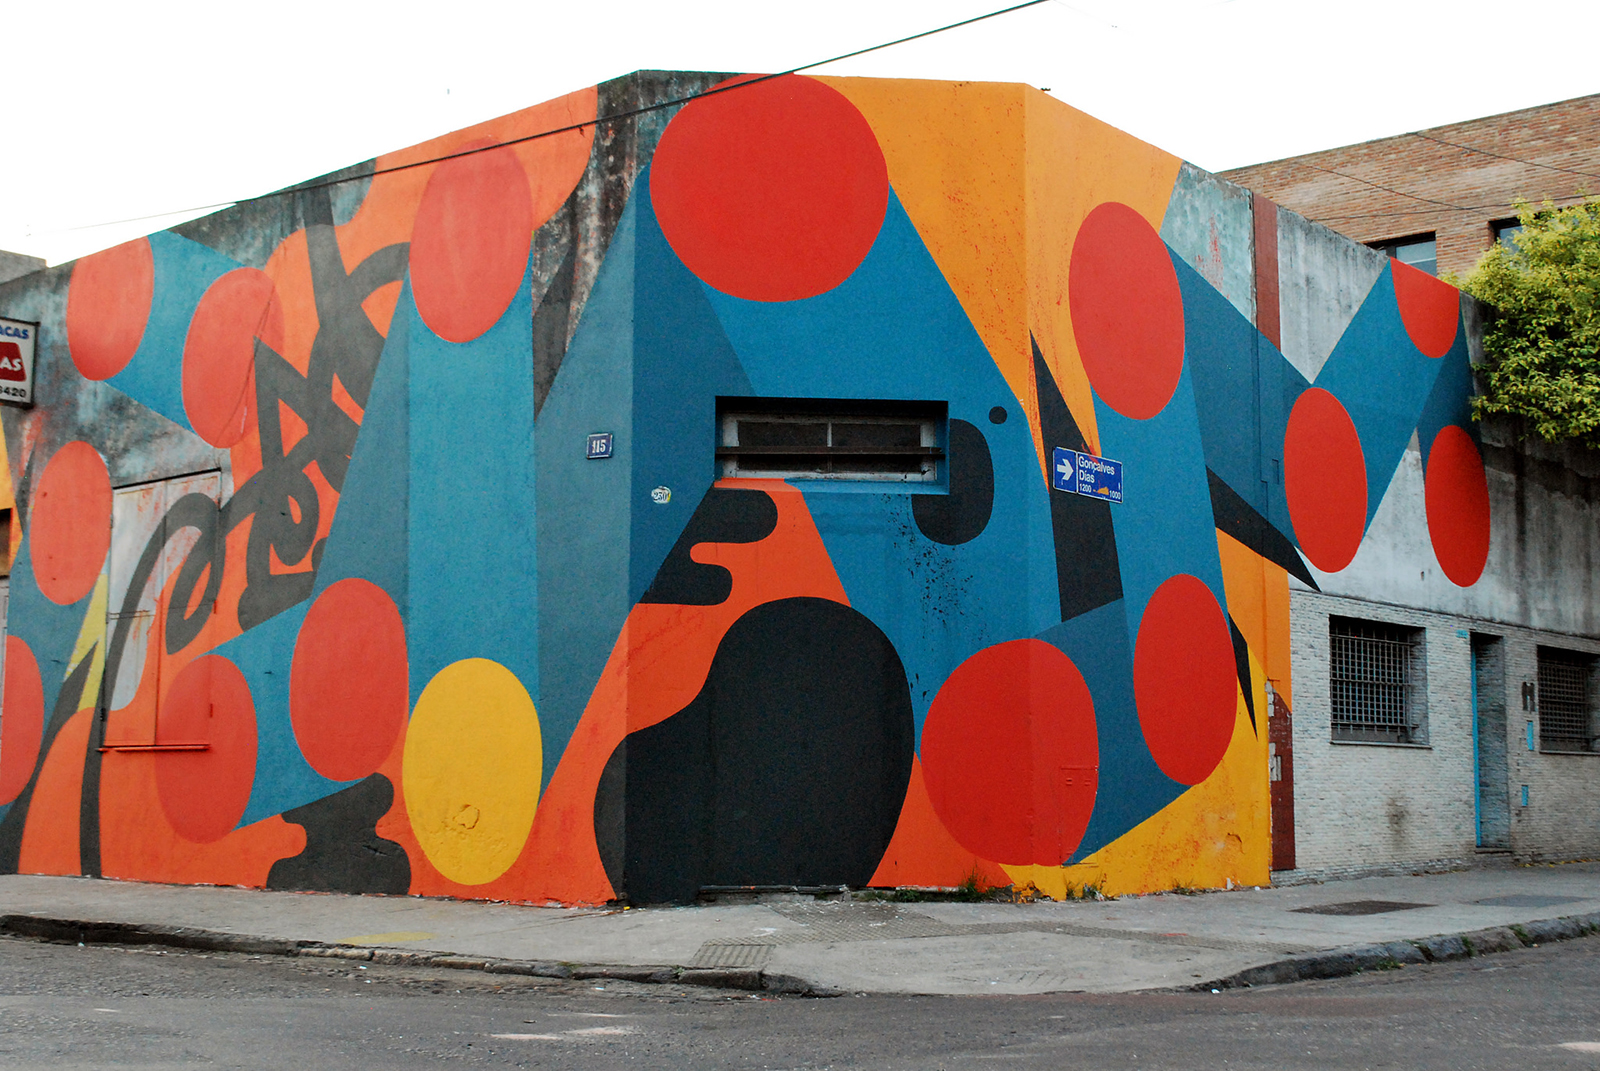 chu-new-mural-in-buenos-aires-02